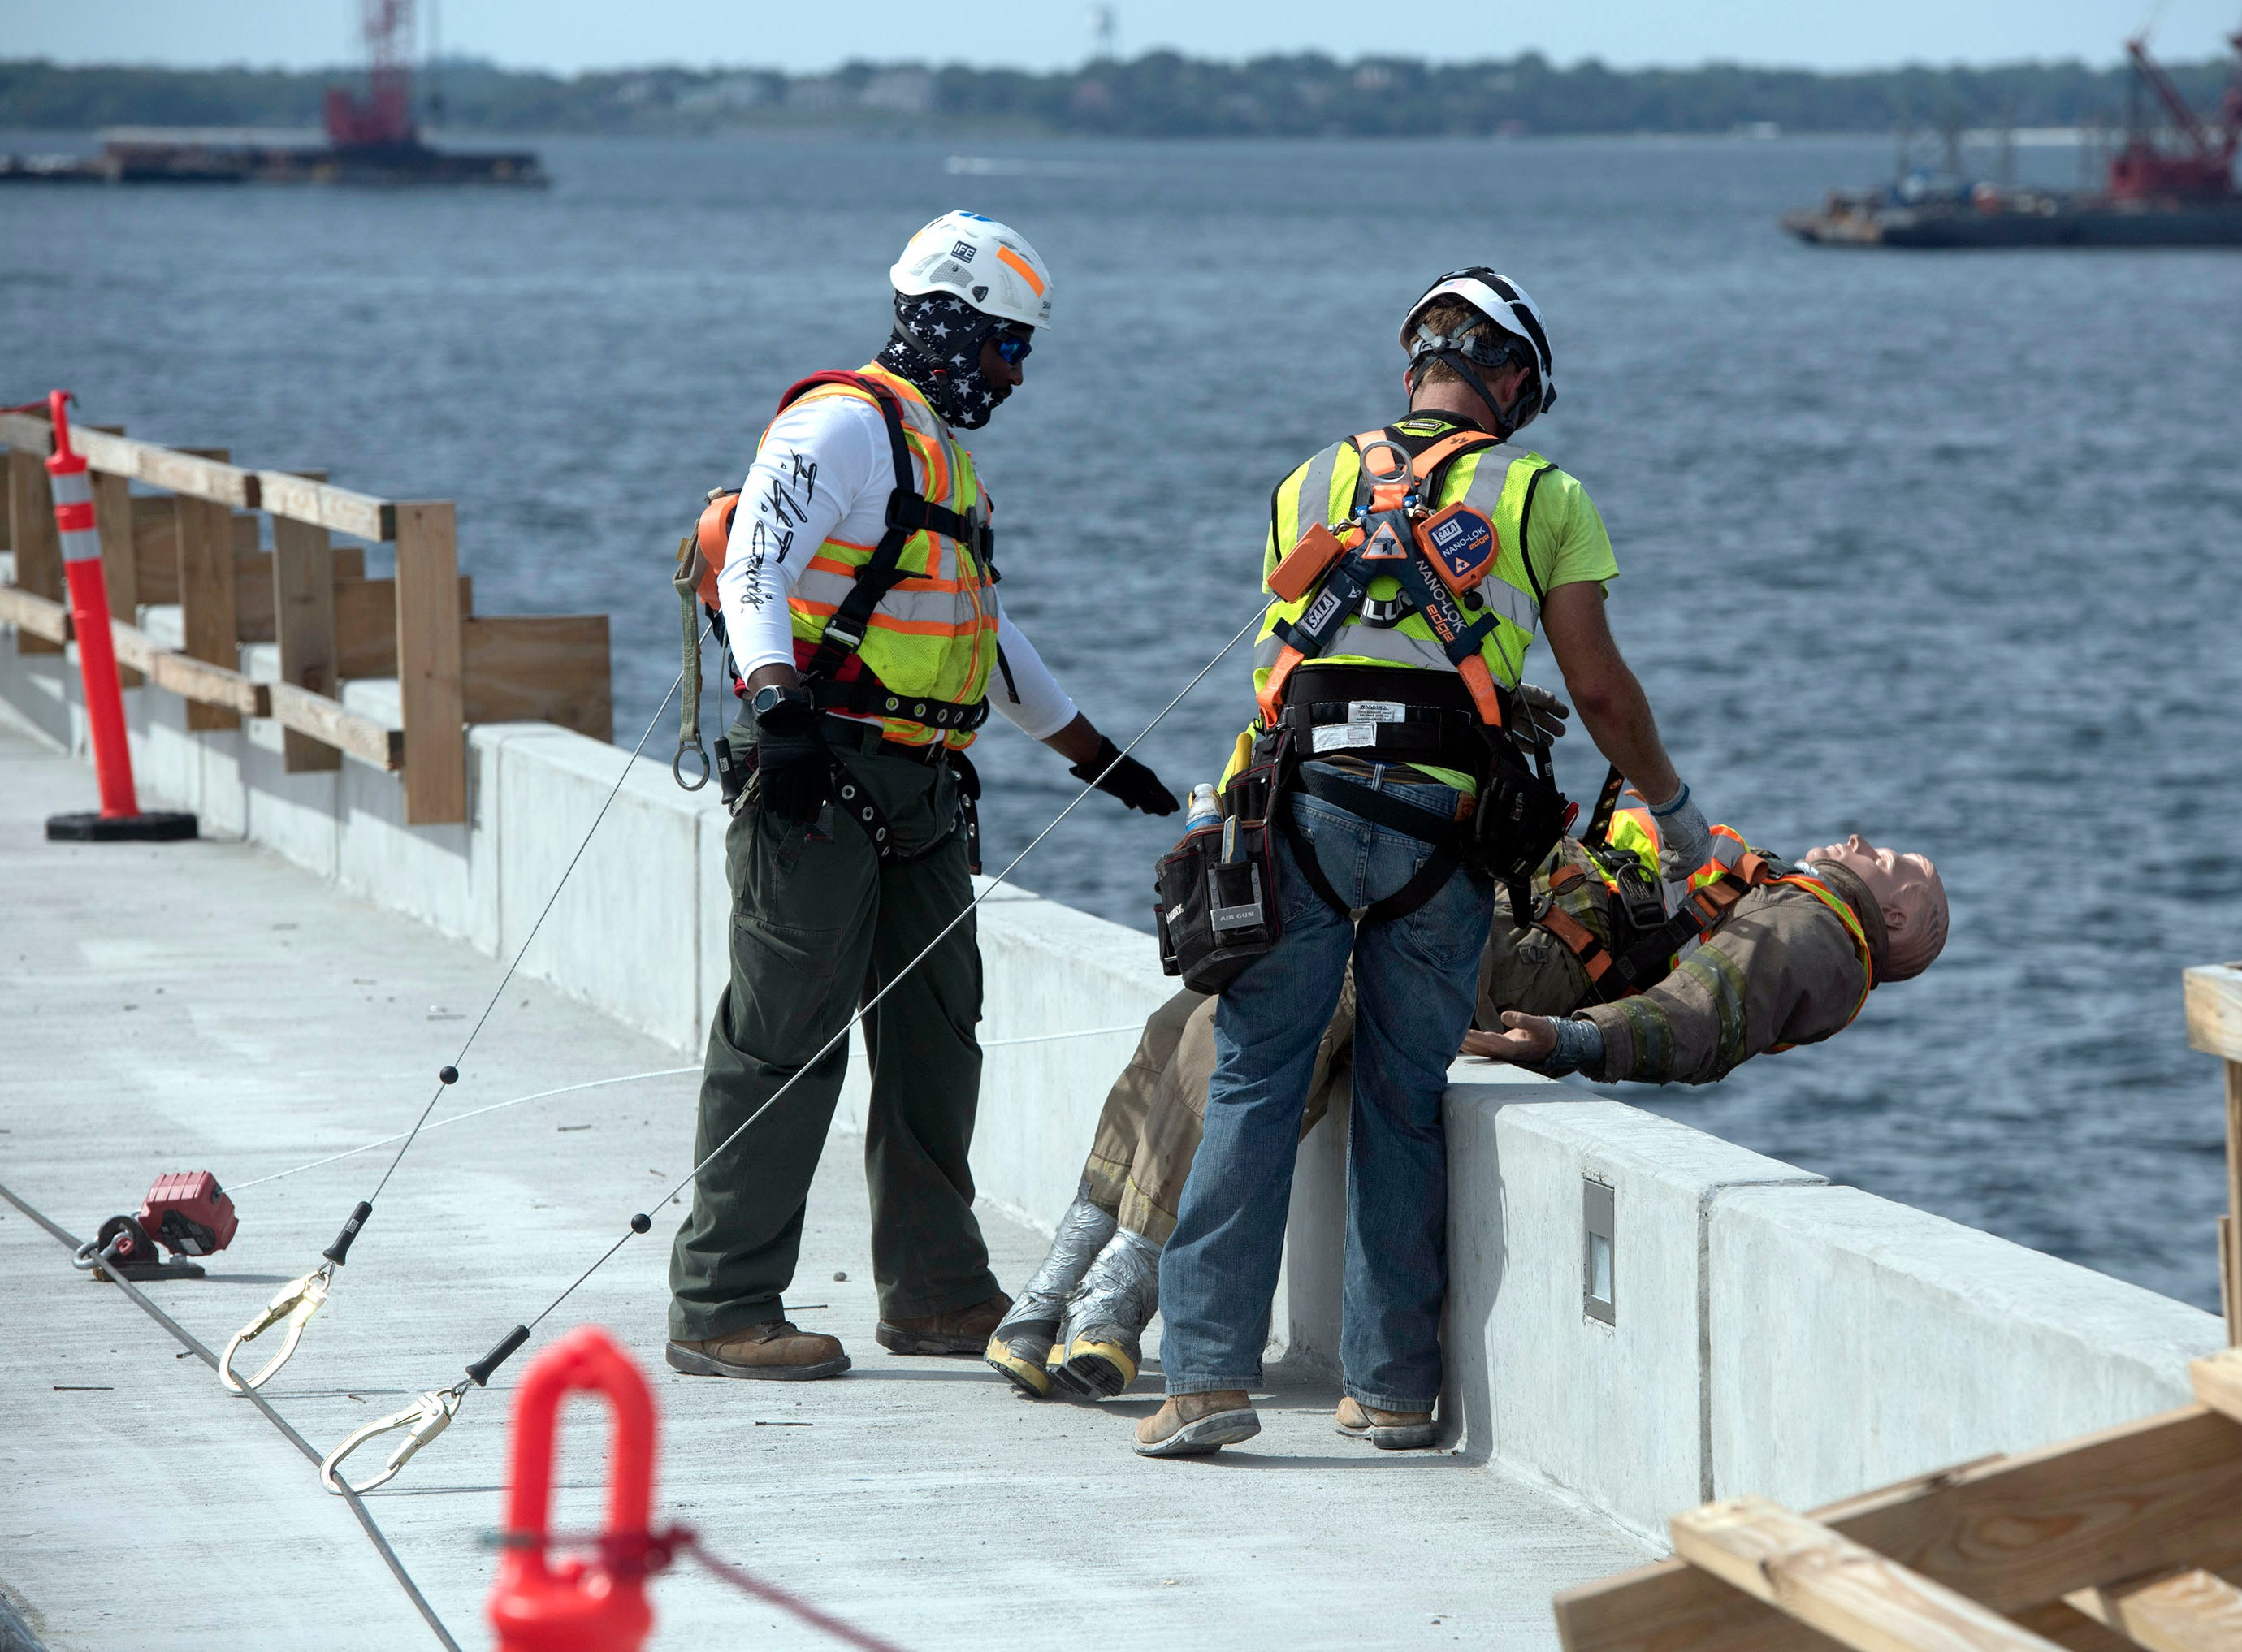 Skanska USA employees Marquis Meriweather and Reiley Werton work with members of the Pensacola Fire Dept., Escambia Fire Rescue, and the Gulf Breeze Volunteer Fire Dept. during a joint safety training exercise on the new Pensacola Bay Bridge under construction on Wednesday, May 8, 2019. The training exercise is part of the company's observance of National Safety Week.